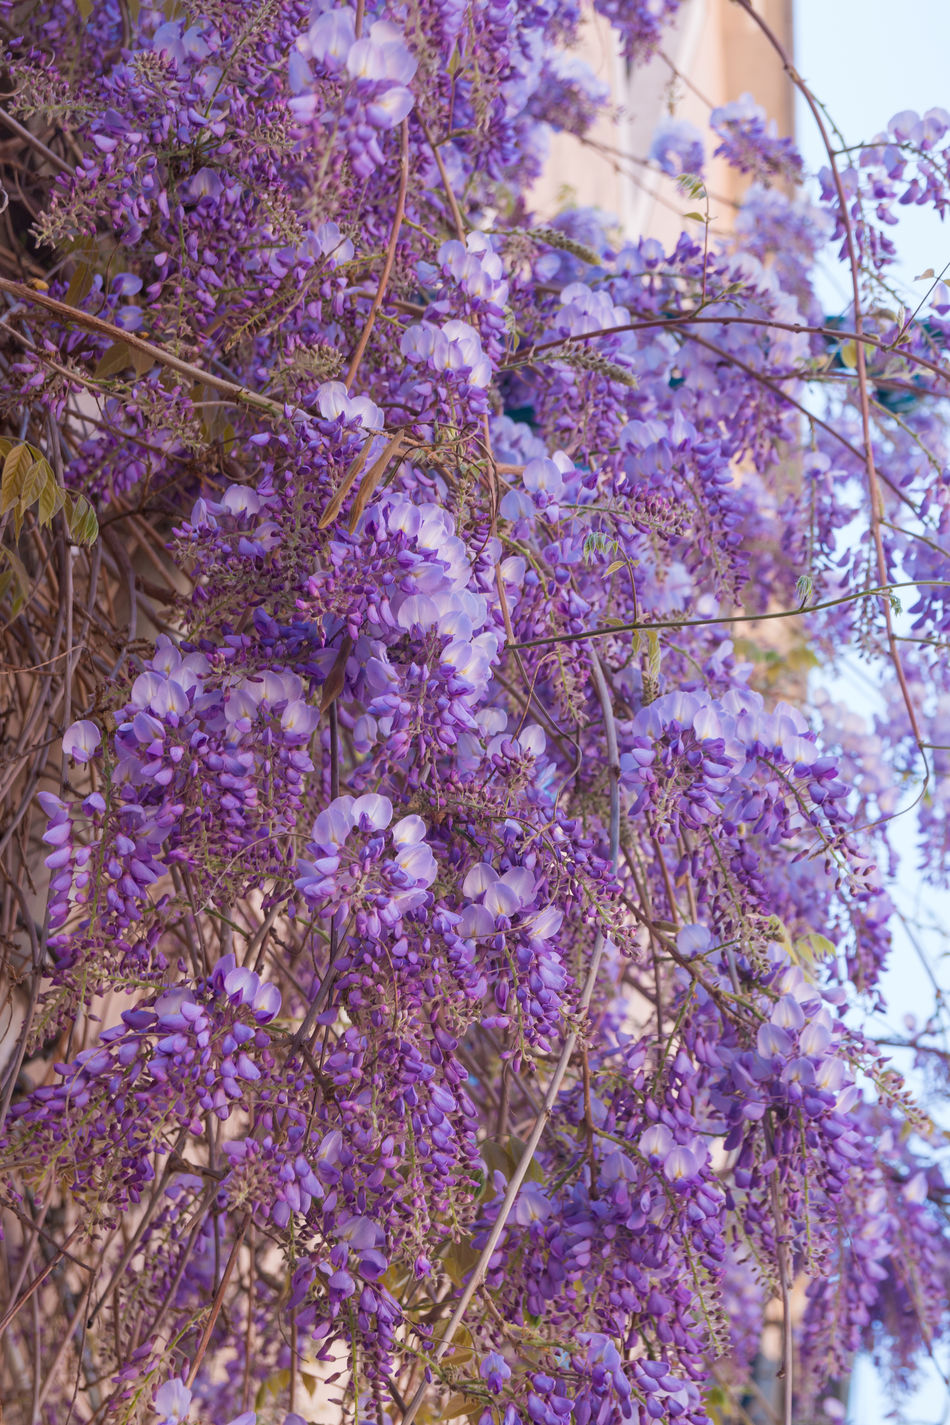 Beauty In Nature Blossom Branch Close-up Day Flower Fragility Freshness Growth Hanging Italy Low Angle View Nature No People Outdoors Purple Scented Springtime Tree Venice, Italy Wisteria